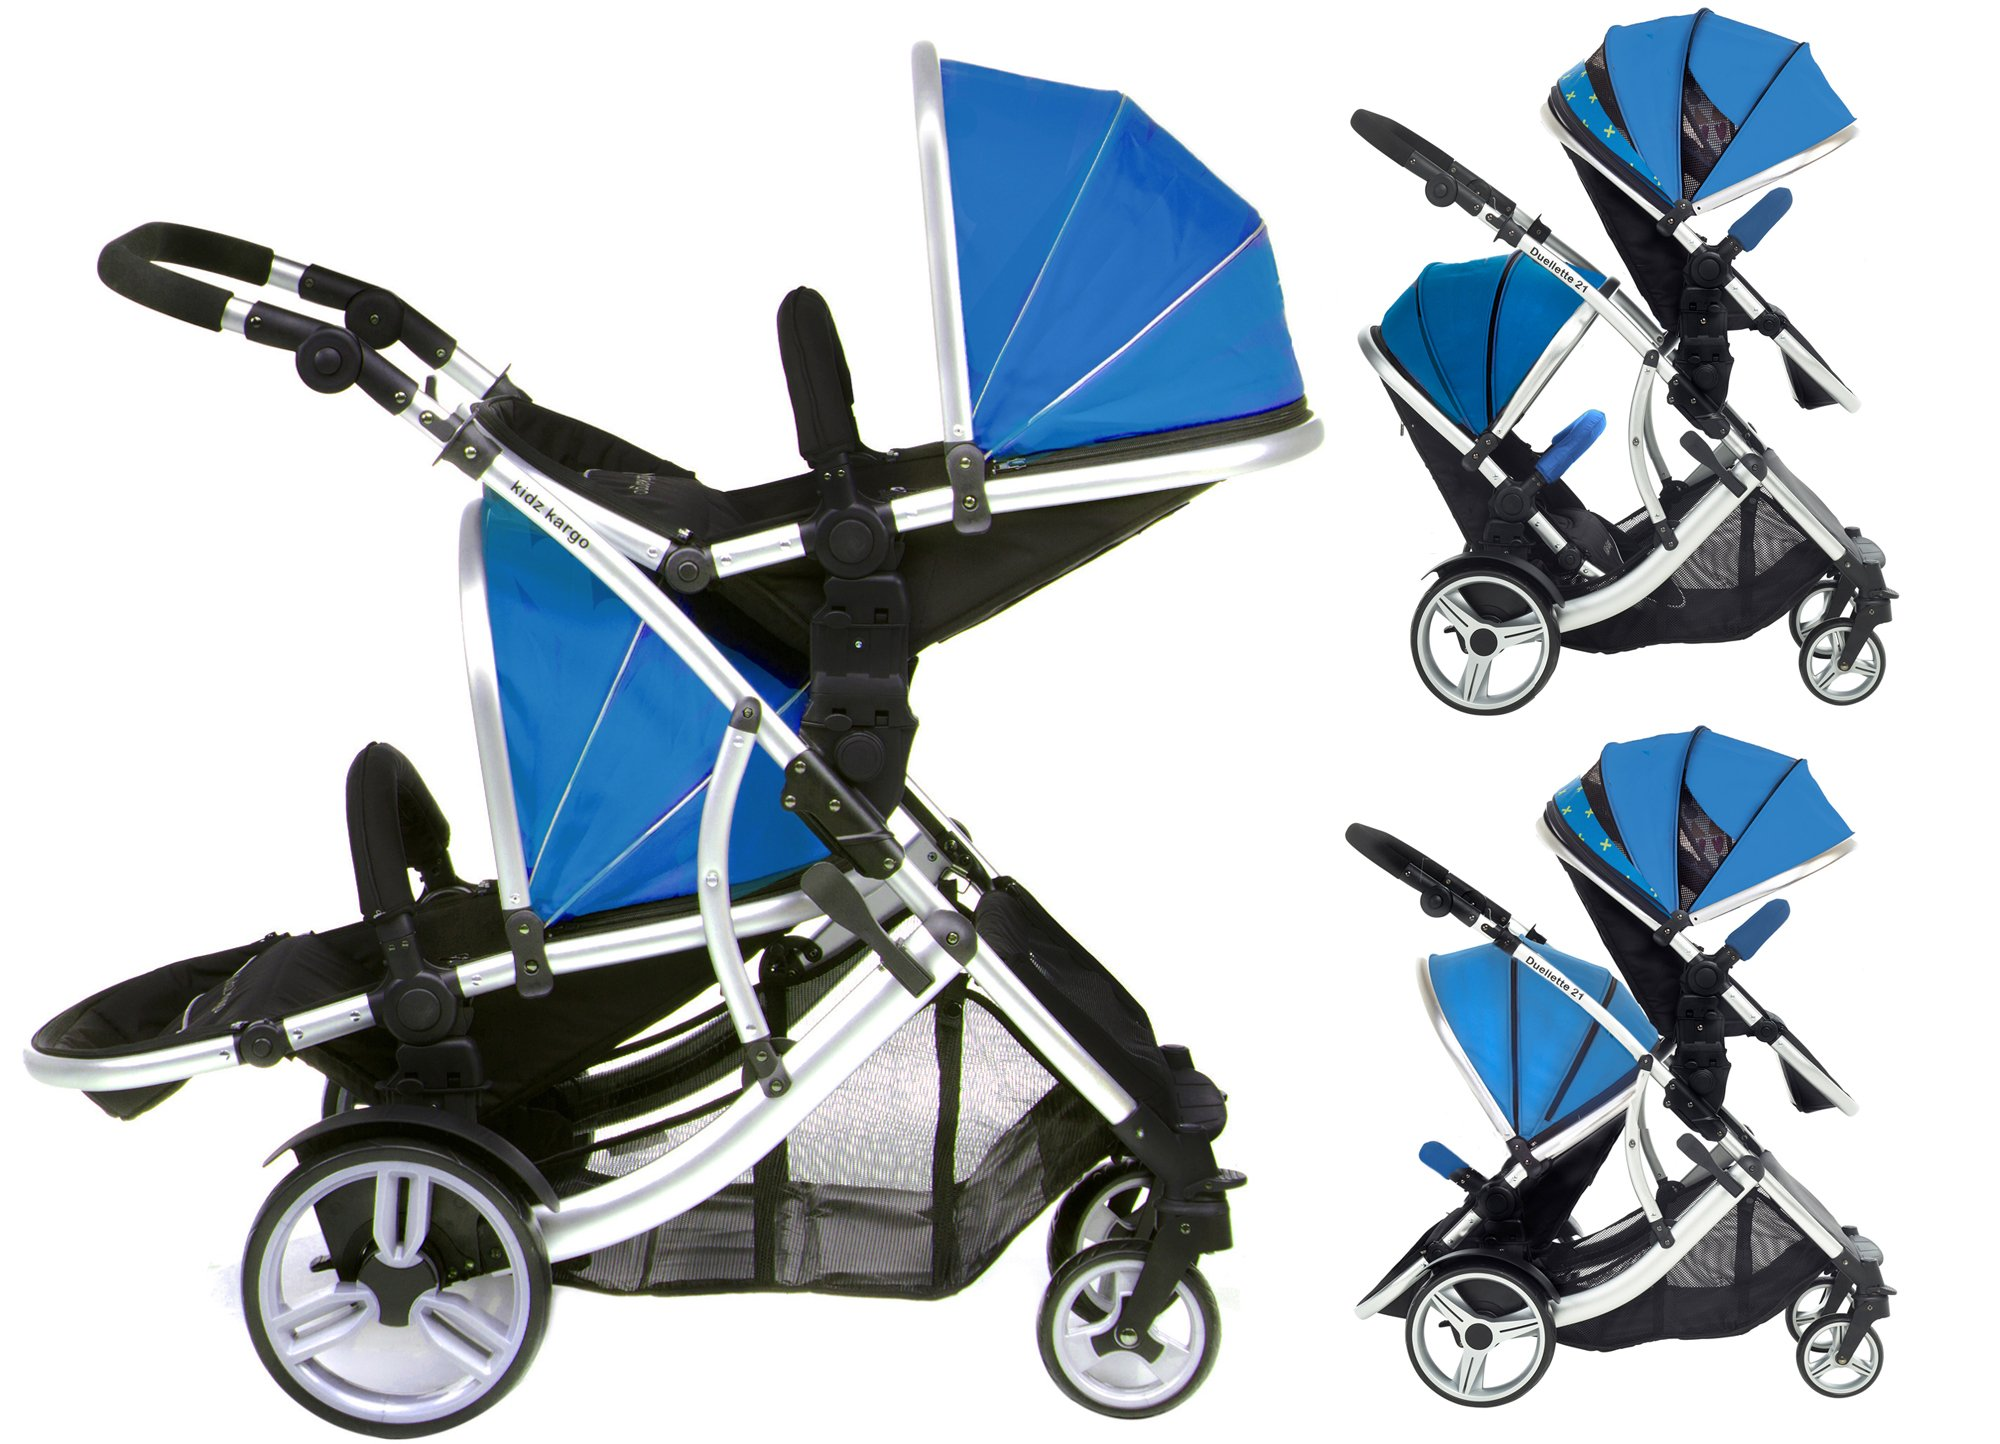 DUELLETTE 21 BS Twin Double Pushchair Tandem Stroller buggy 2 seat units, compatible with Kids Kargo safety Pod Car seat OR maxi cosi clips or Britax Baby safety Car seat. (sold separately) 2 Free Teal footmuffs 2 Free rain covers Black /Teal Silver chassis Ideal for Twins or Baby Toddler by Kids Kargo Kids Kargo Demo video please see link http://youtu.be/Ngj0yD3TMSM Various seat positions. Both seats can face mum (ideal for twins) Suitability Twins (Newborn Twins if used with car seats). Accommodates 1 or 2 car seats 1